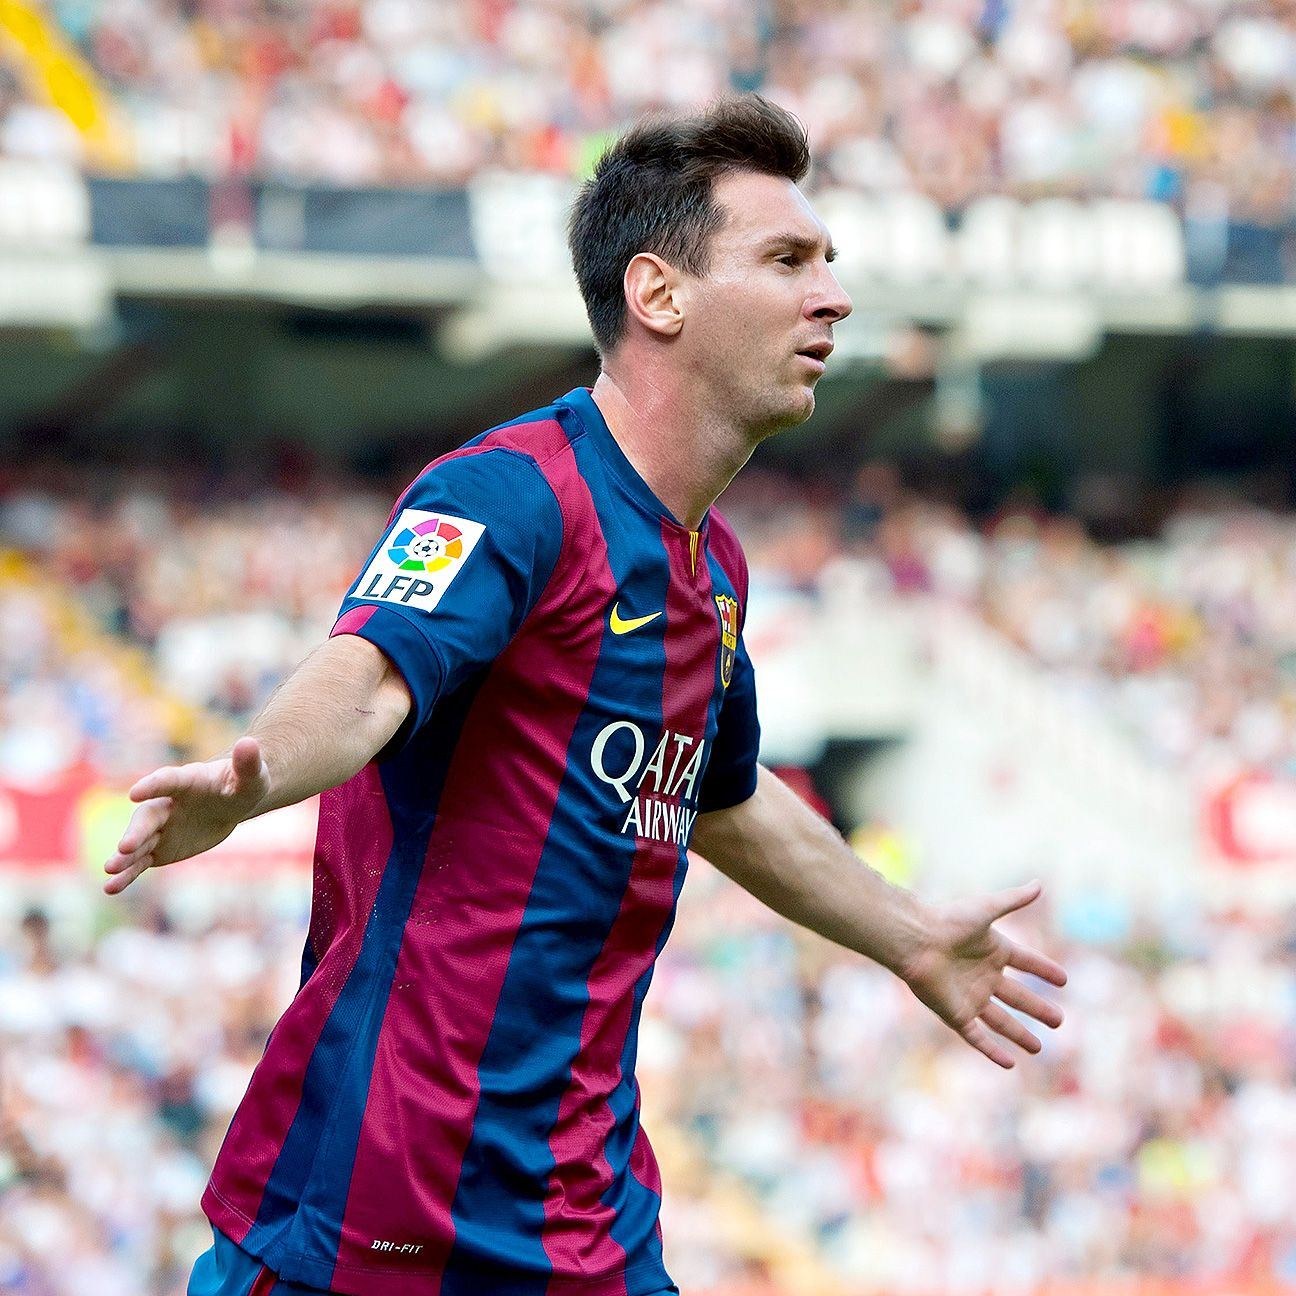 Lionel Messi just needs three more goals to become the all-time leading scorer in La Liga history.